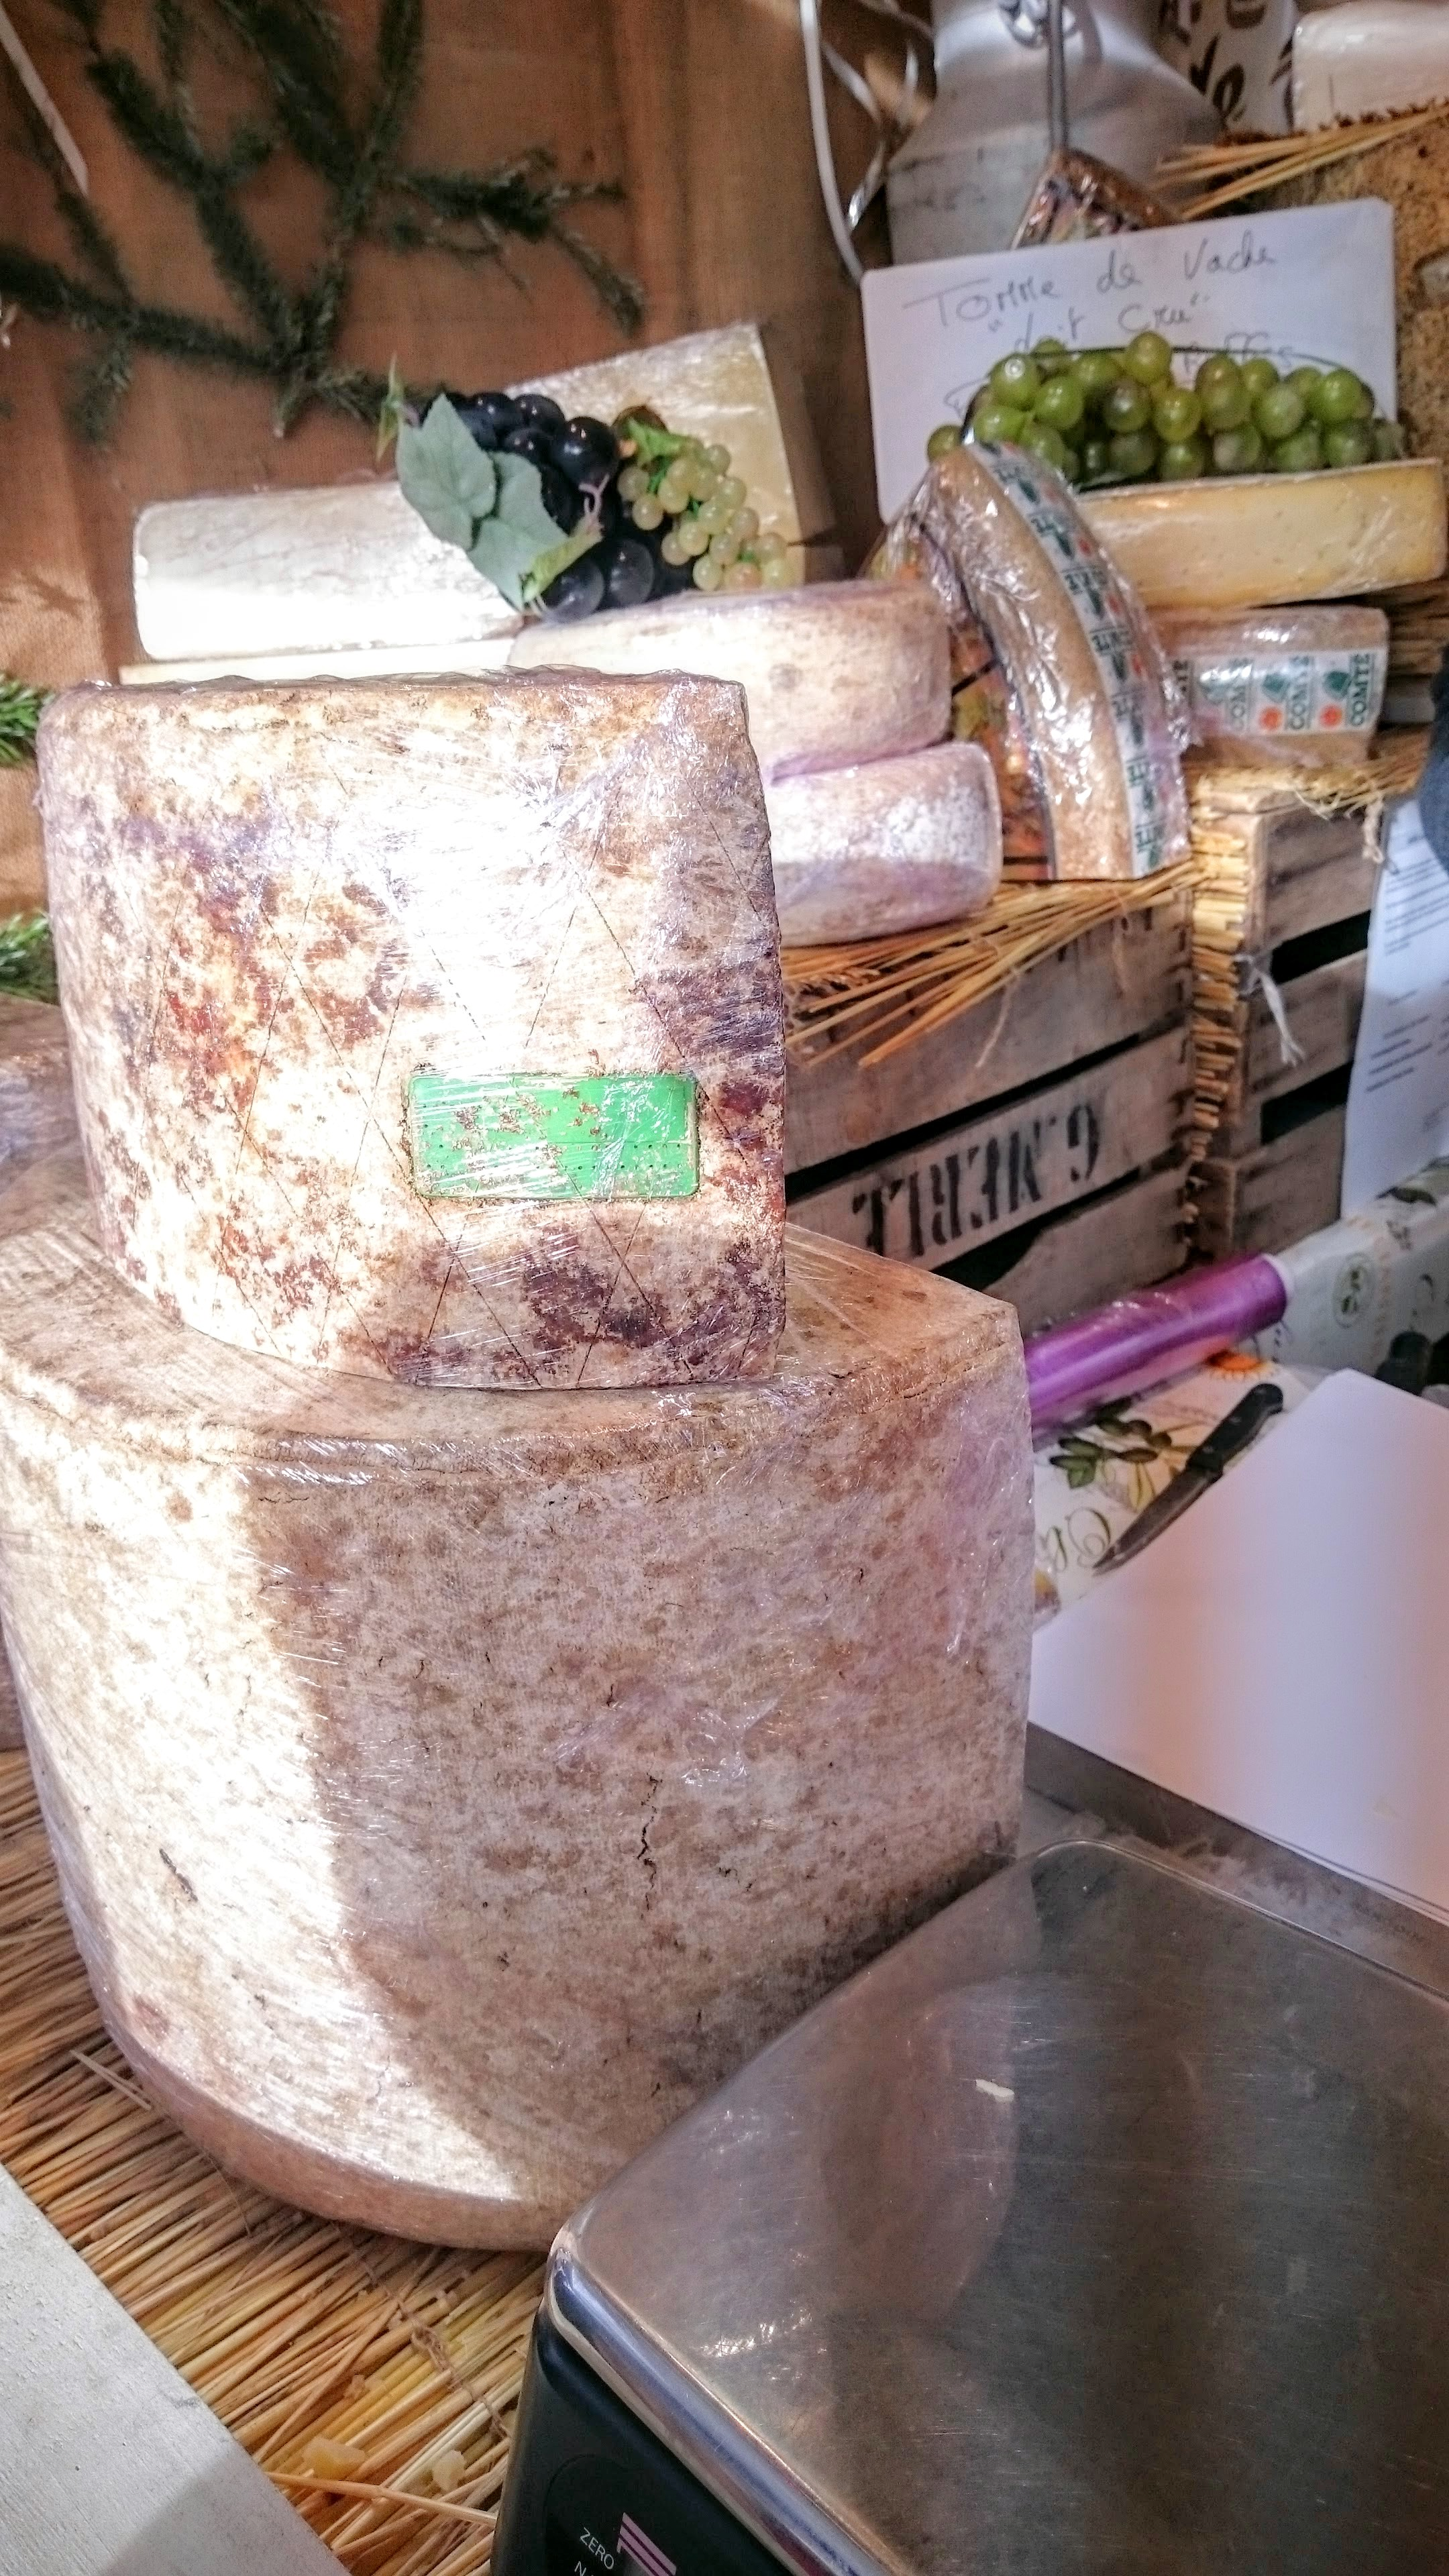 Tower of Cantal